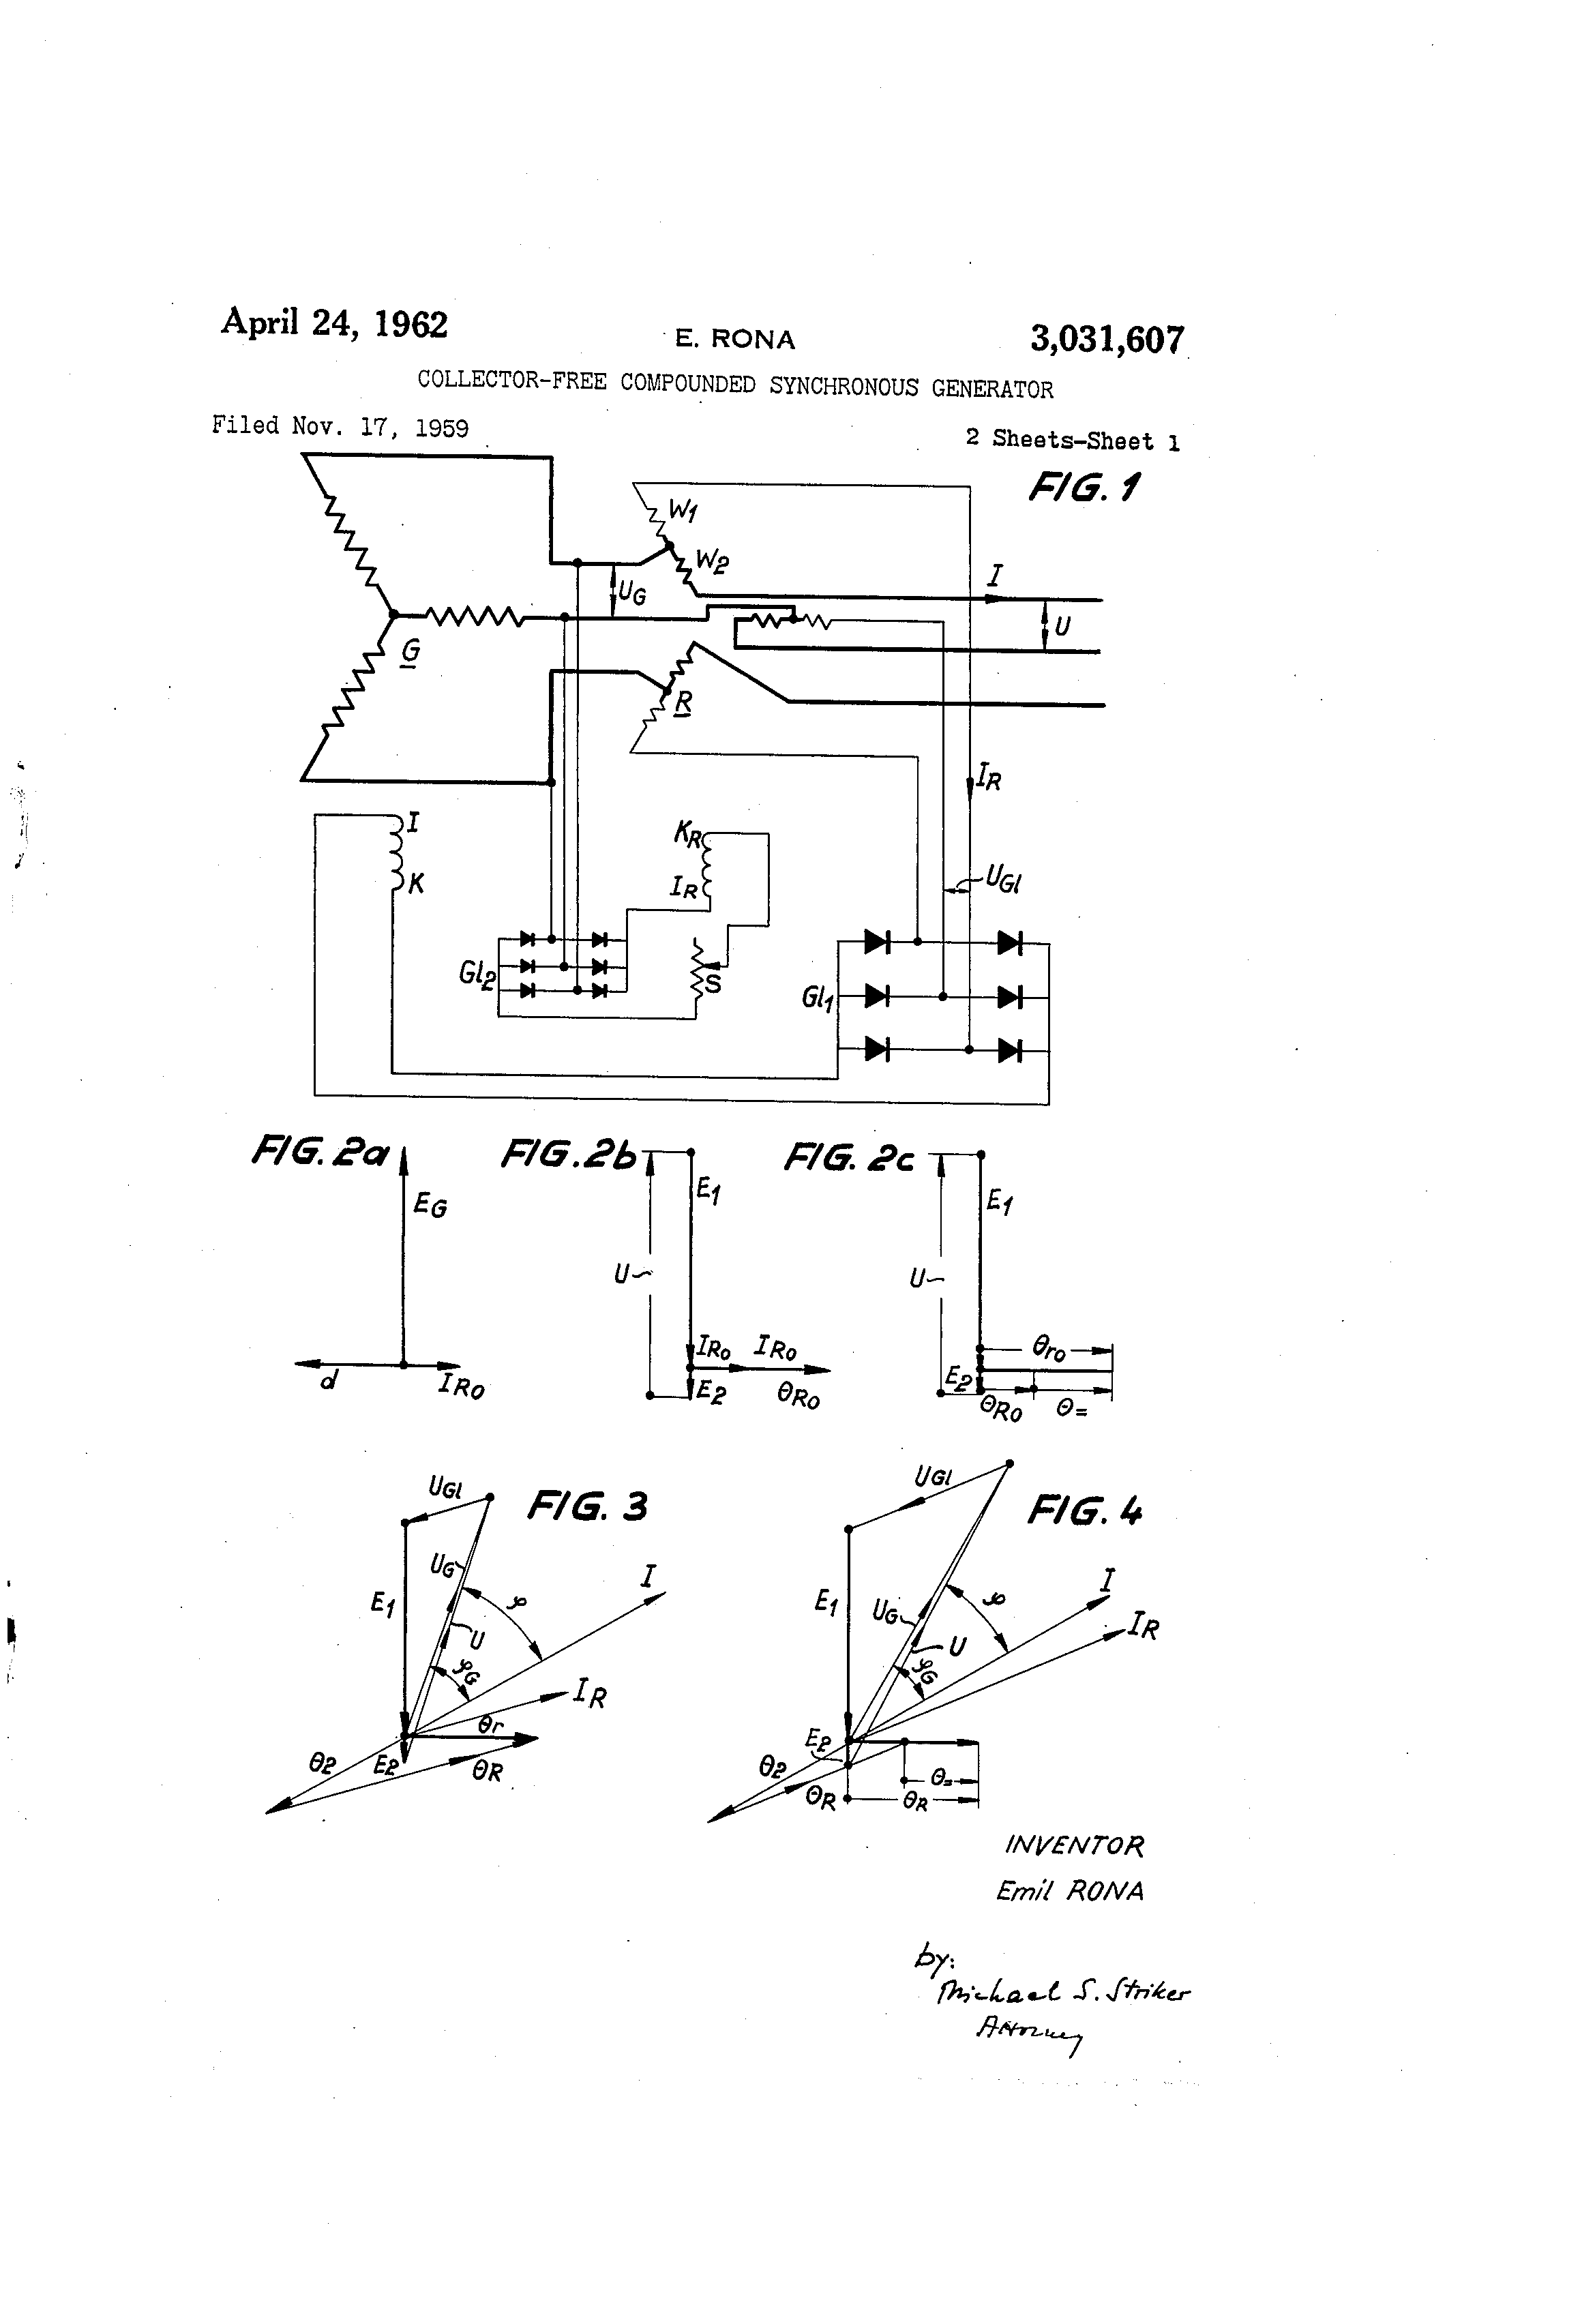 Brevet Us3031607 Collector Free Compounded Synchronous Generator Shortcircuitratioofsynchronousgeneratorfig1 Patent Drawing